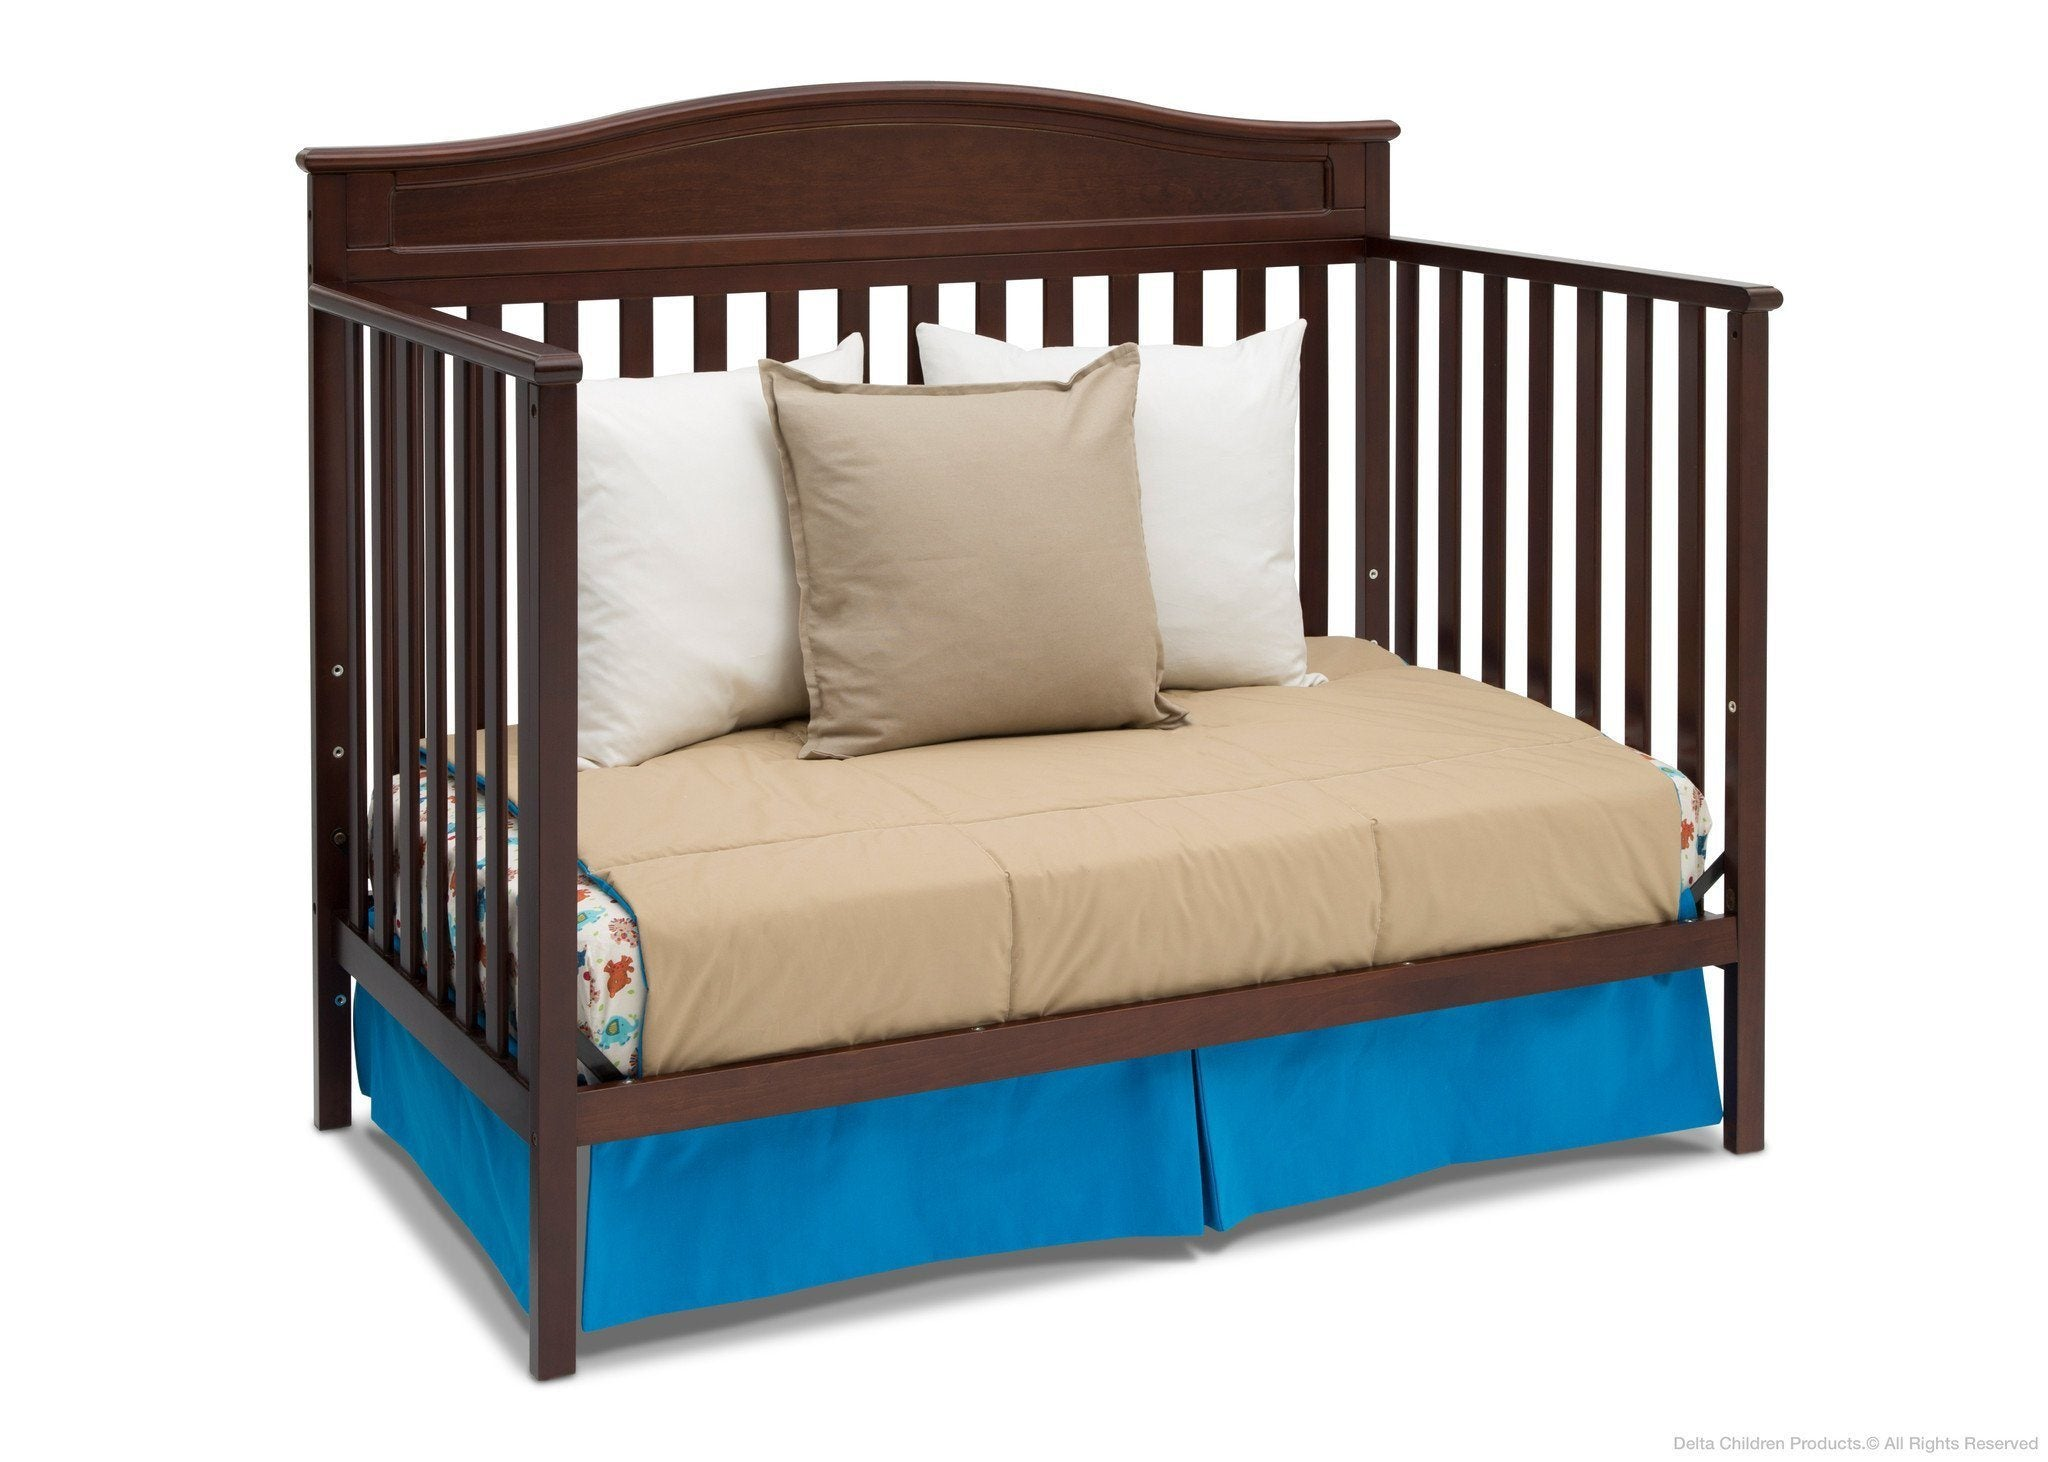 Metal Bed Frame For Crib Conversion - Best Crib 2018